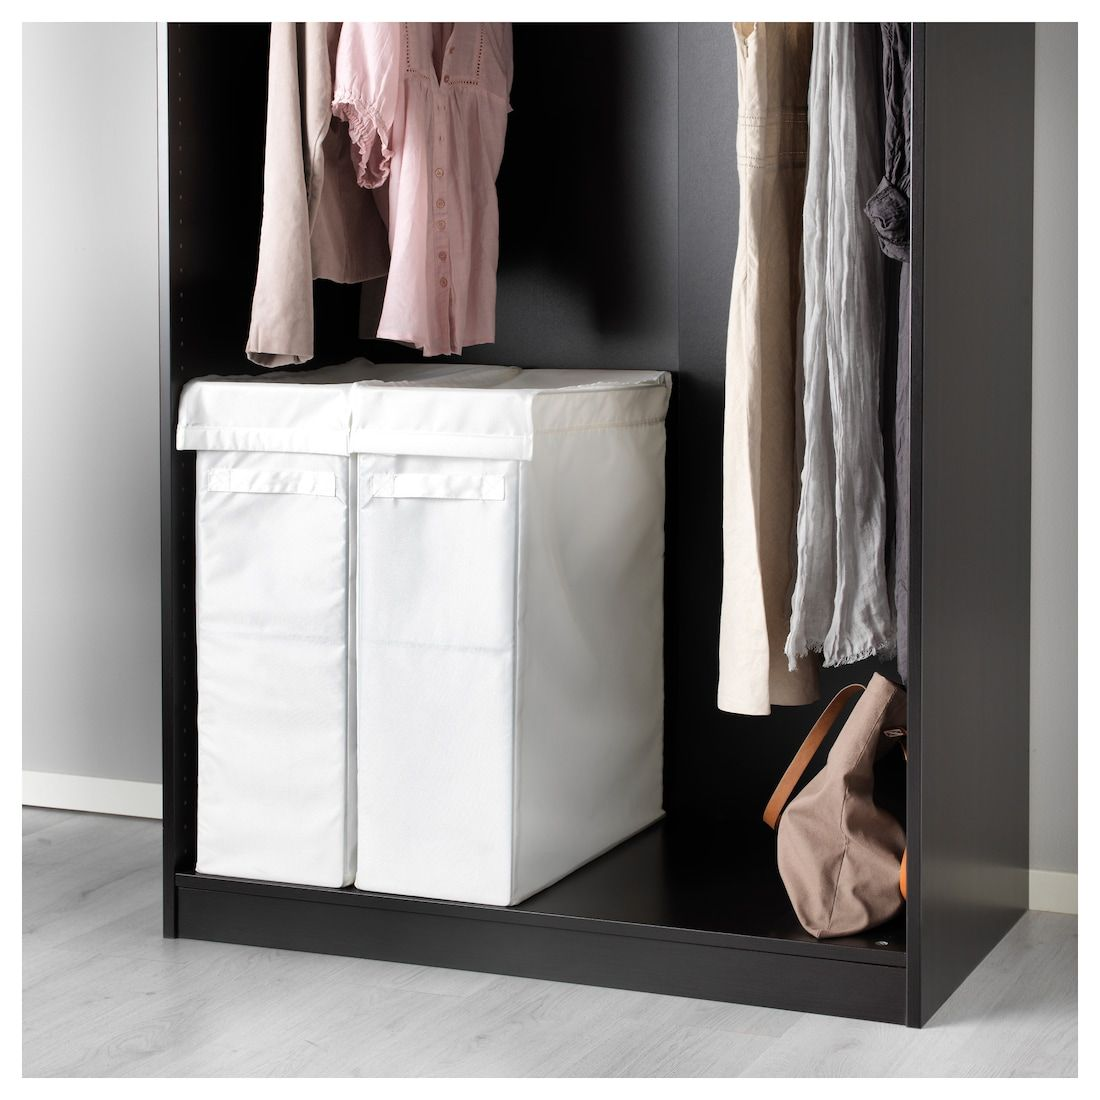 Skubb Laundry Bag With Stand White 21 Gallon In 2020 Ikea